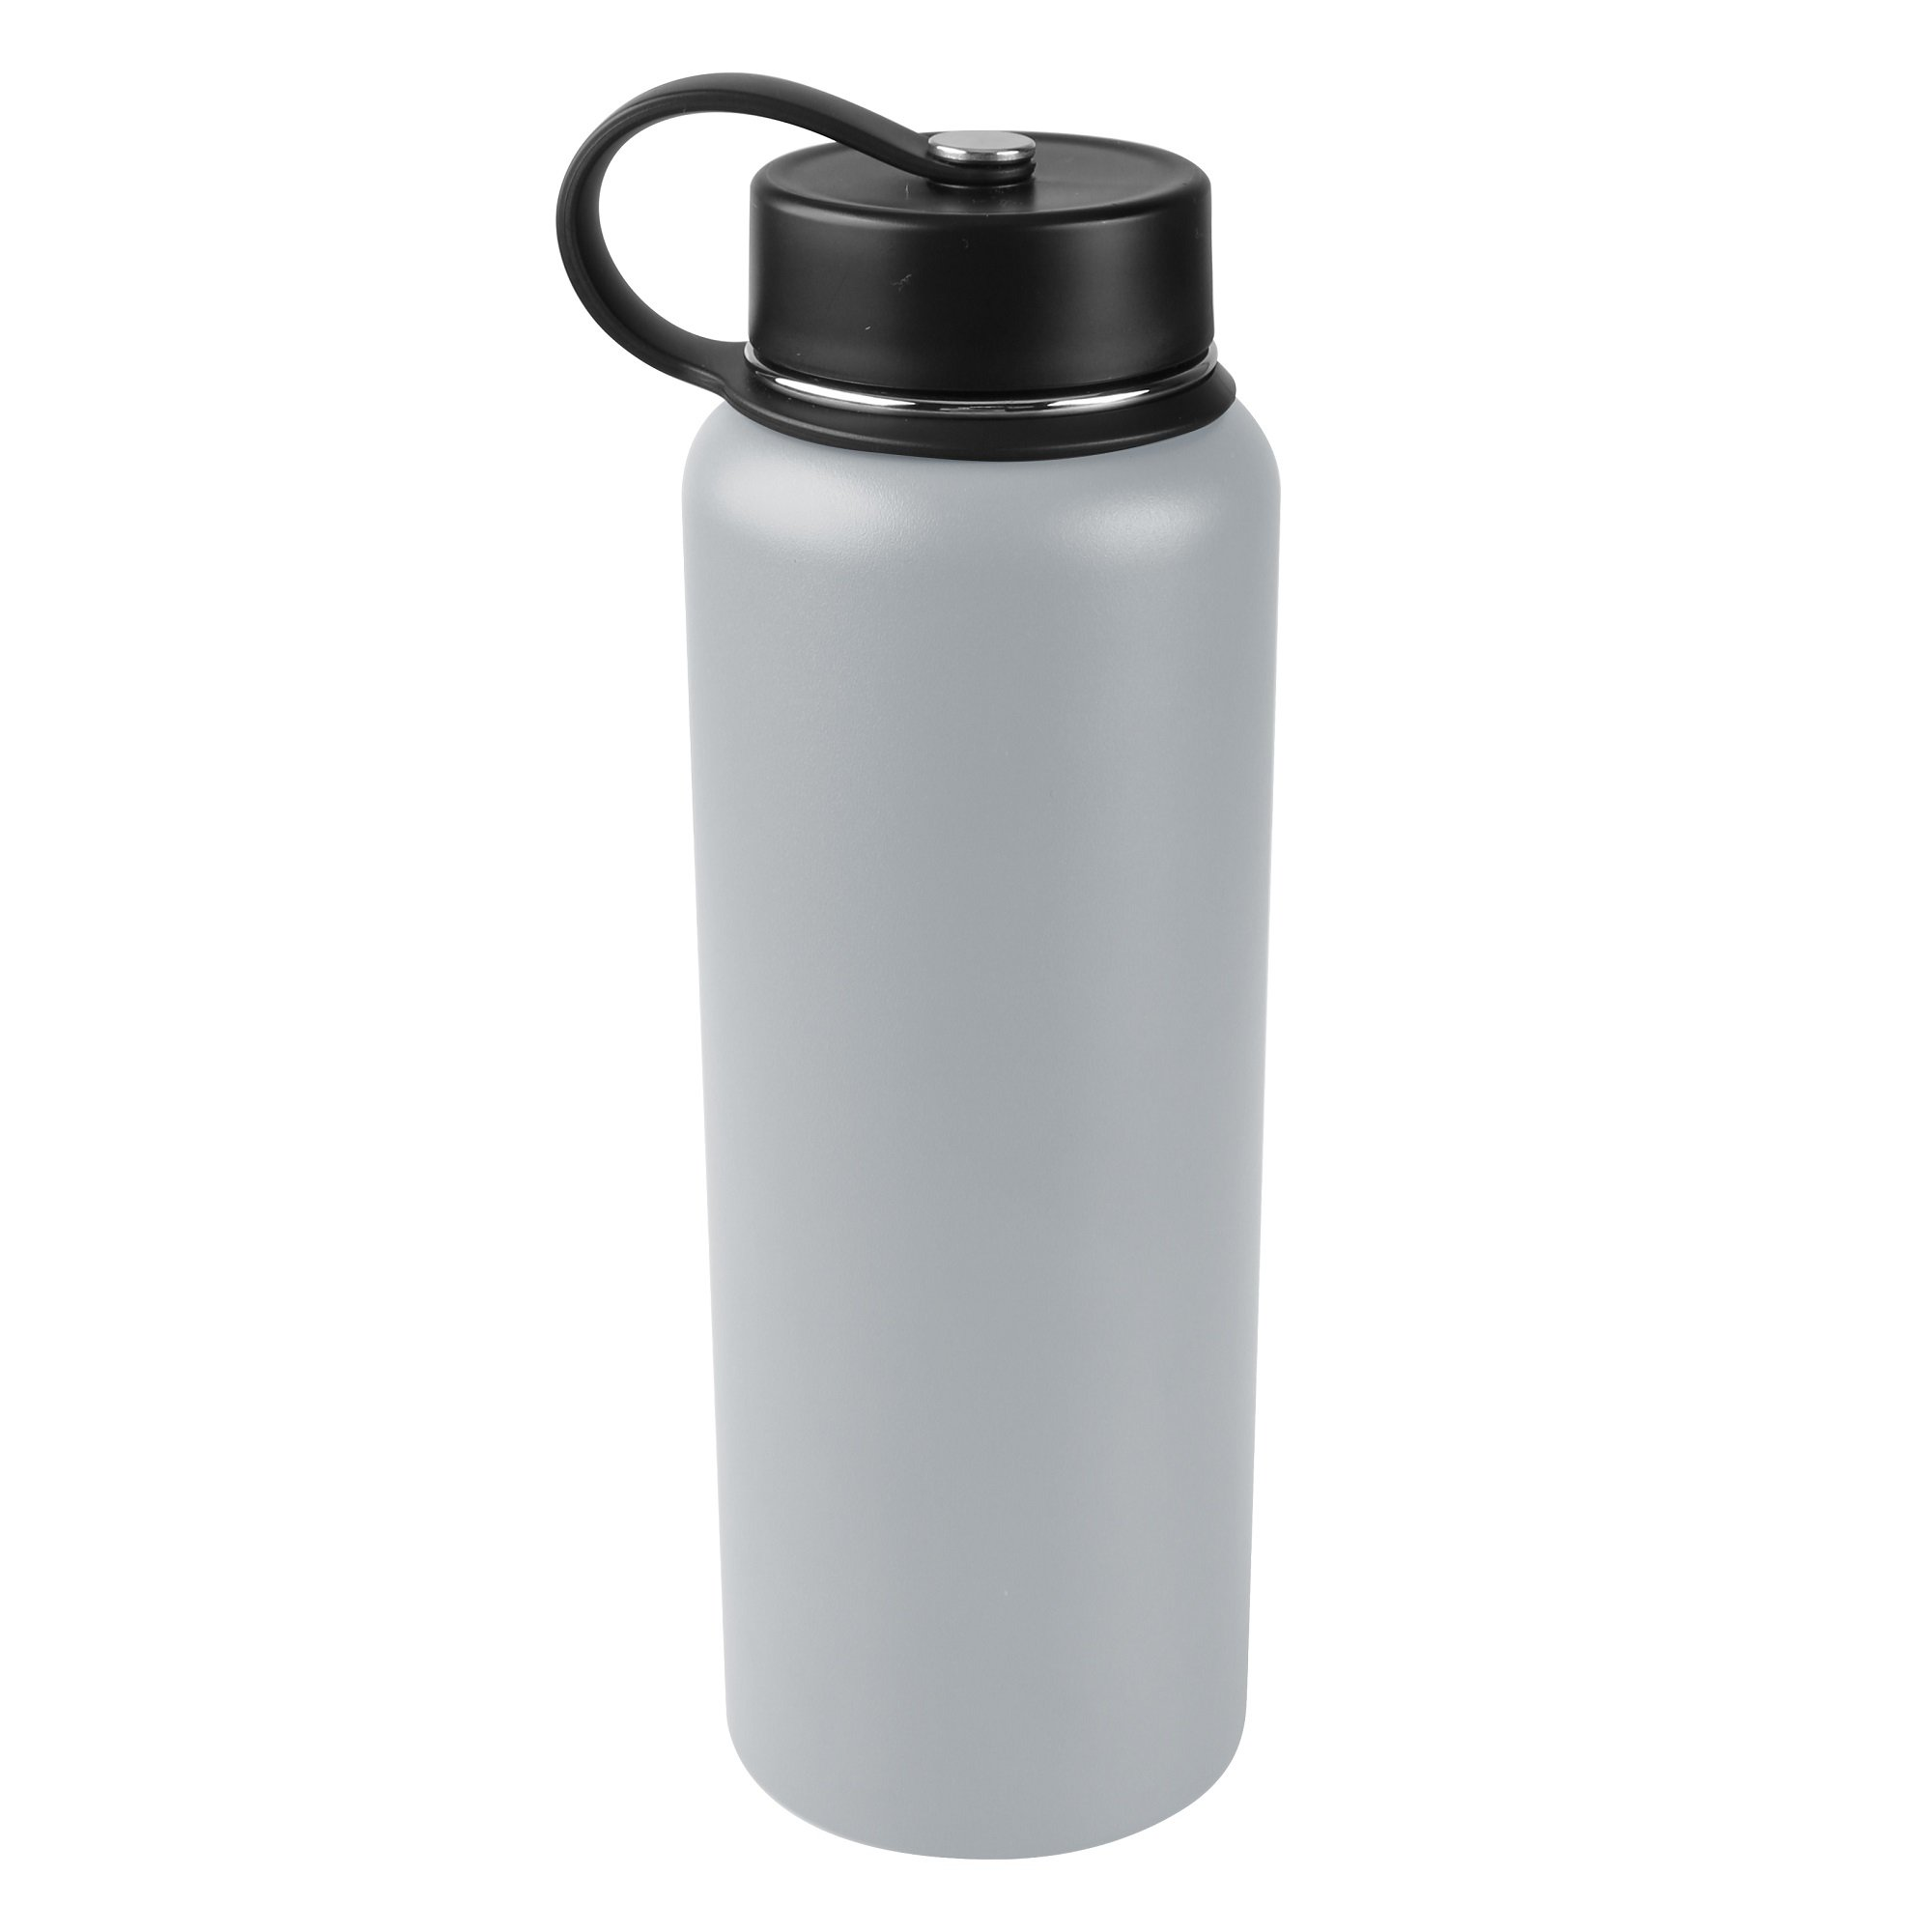 Tahoe Trails Double Wall Vacuum Insulated Stainless Steel Water Bottle (gray, 40 oz)